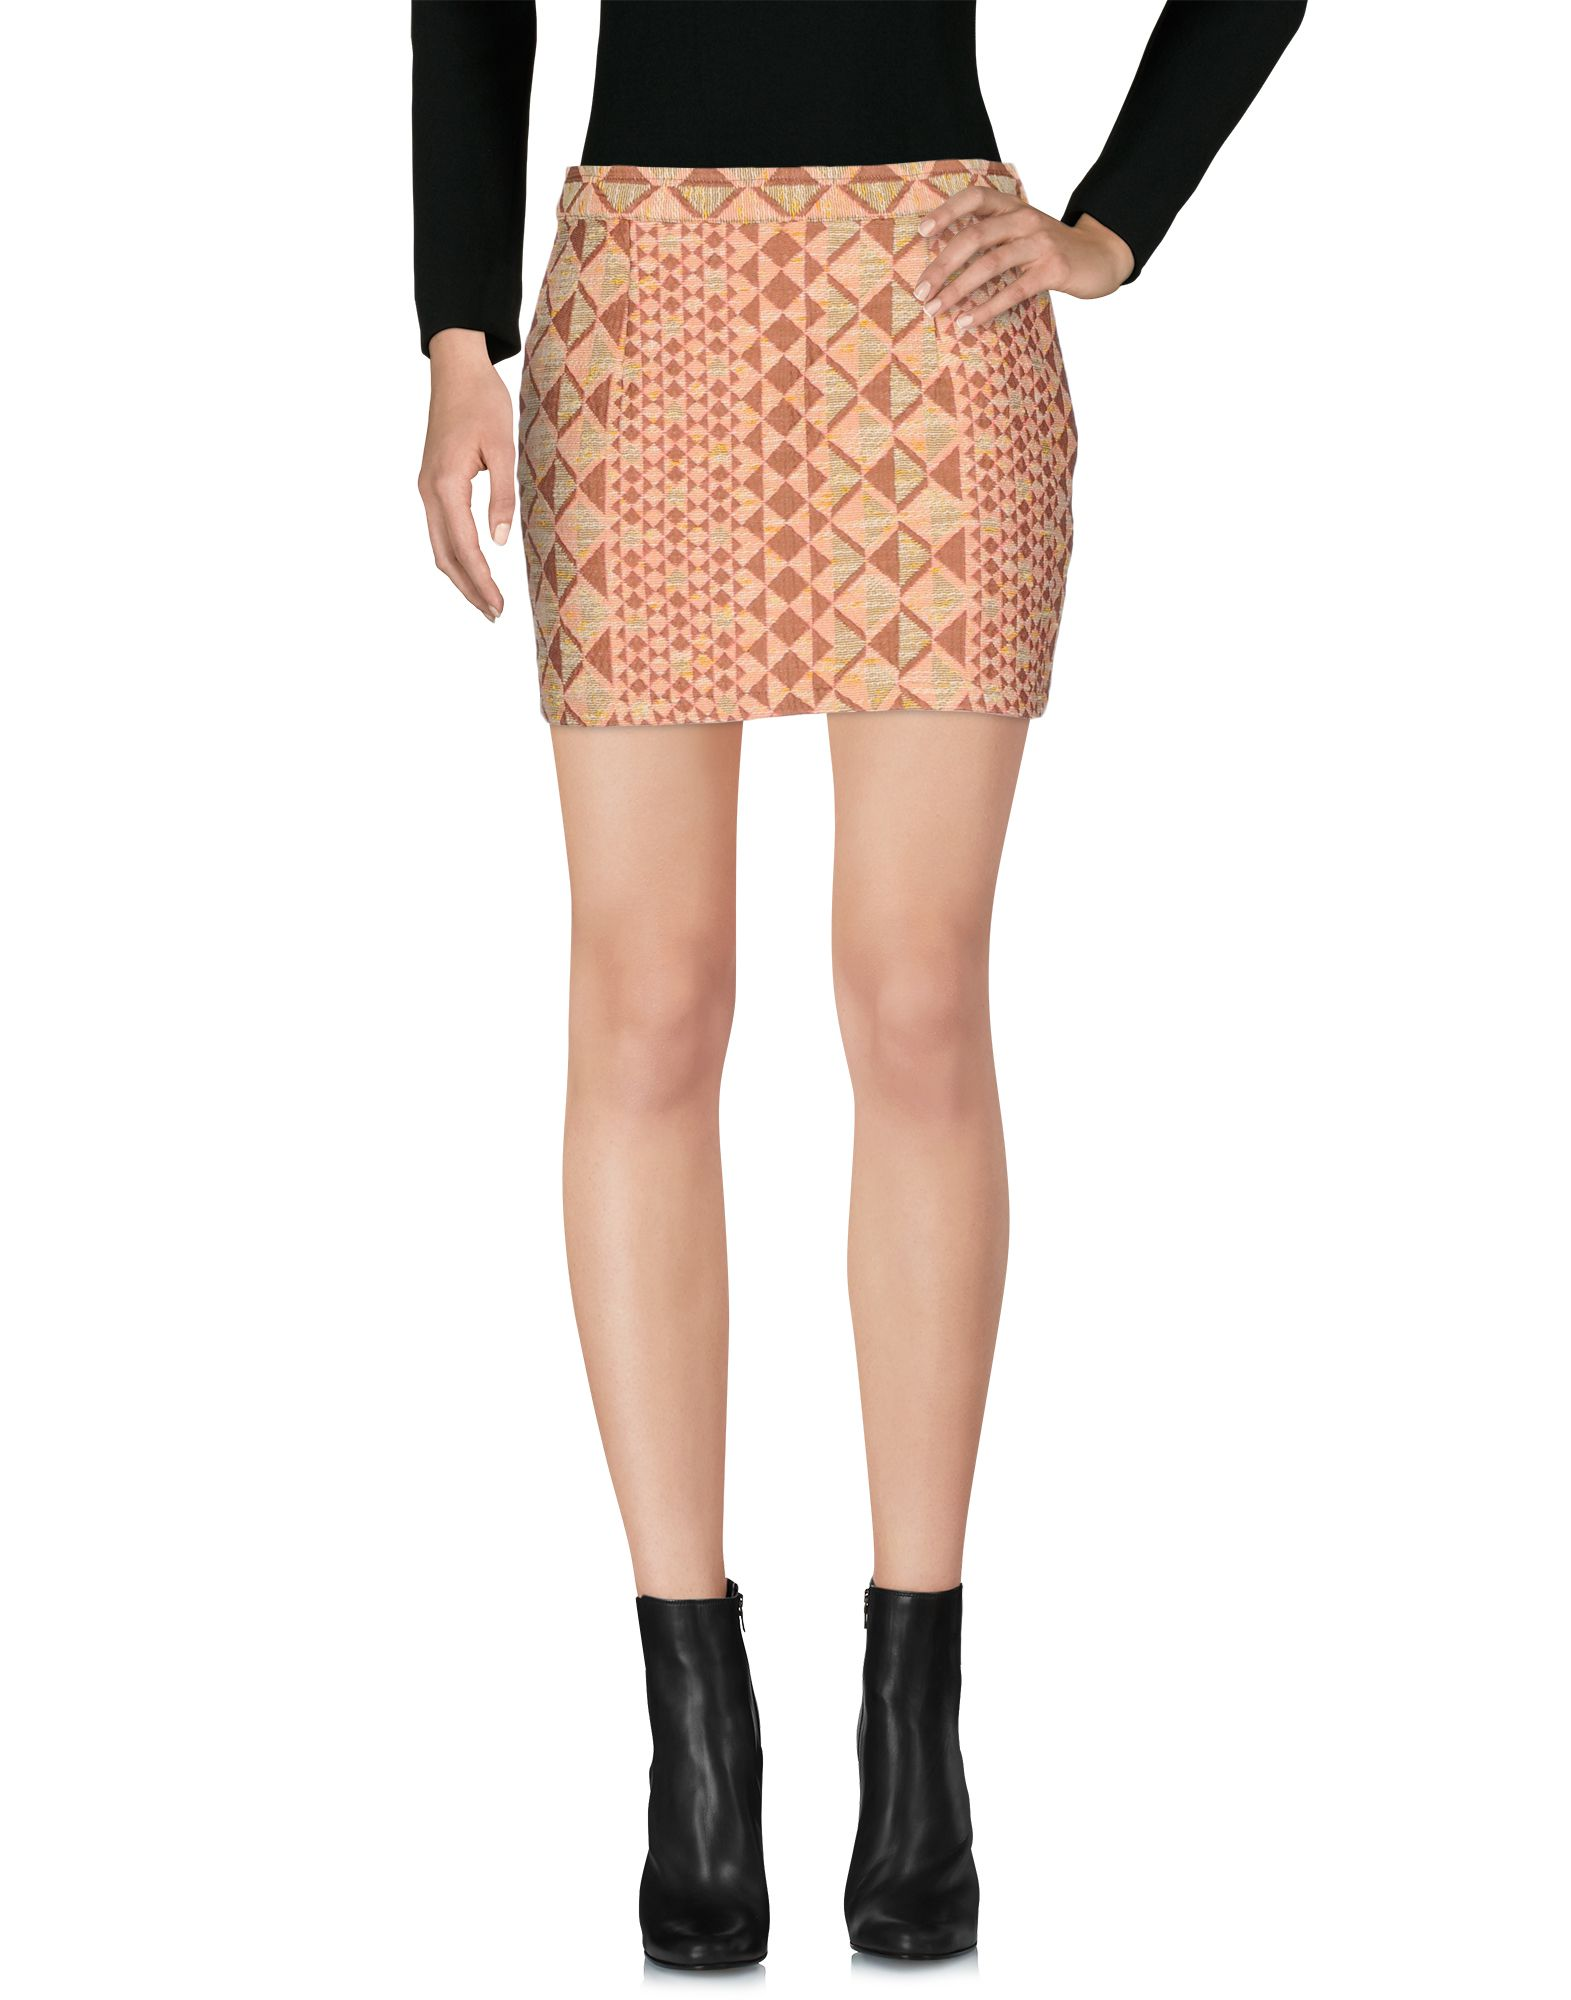 KAGE Mini Skirt in Coral